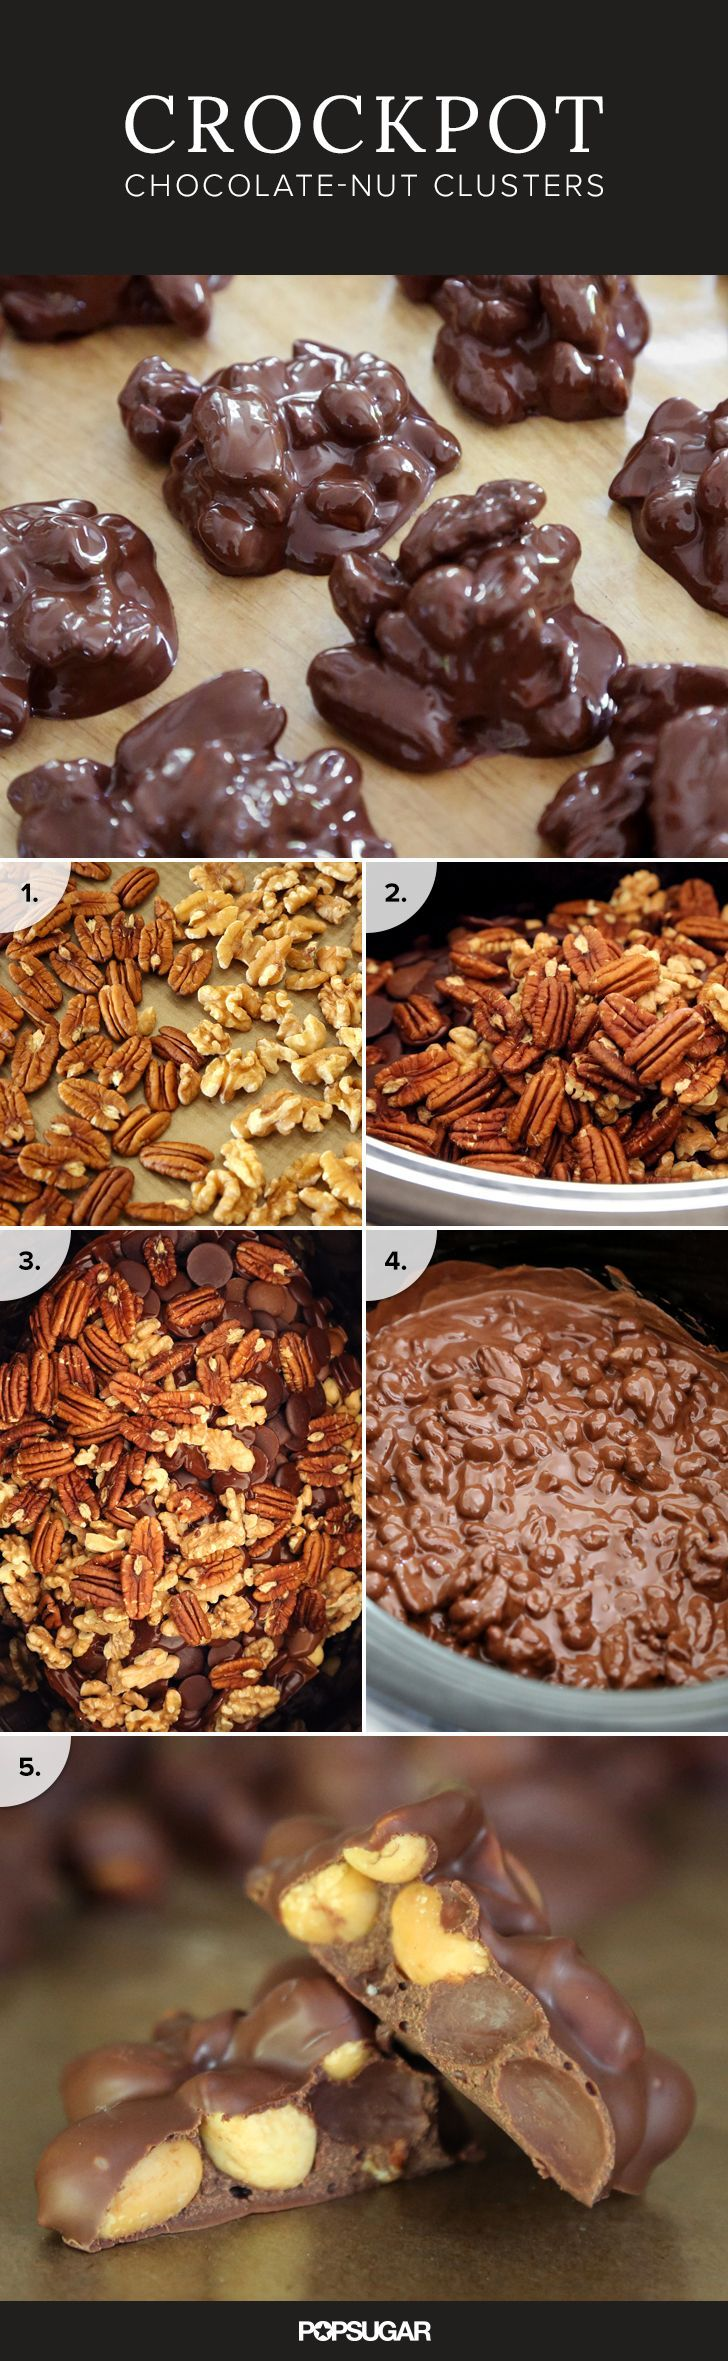 These decadent crockpot candies (chocolate clusters stuffed with nuts) satisfy any chocolate craving and have a crunchy texture. This recipe is also really versatile — use your favorite nuts or chocolates. Make it dairy-free or peanut-free, depending on your family's and friends' needs.